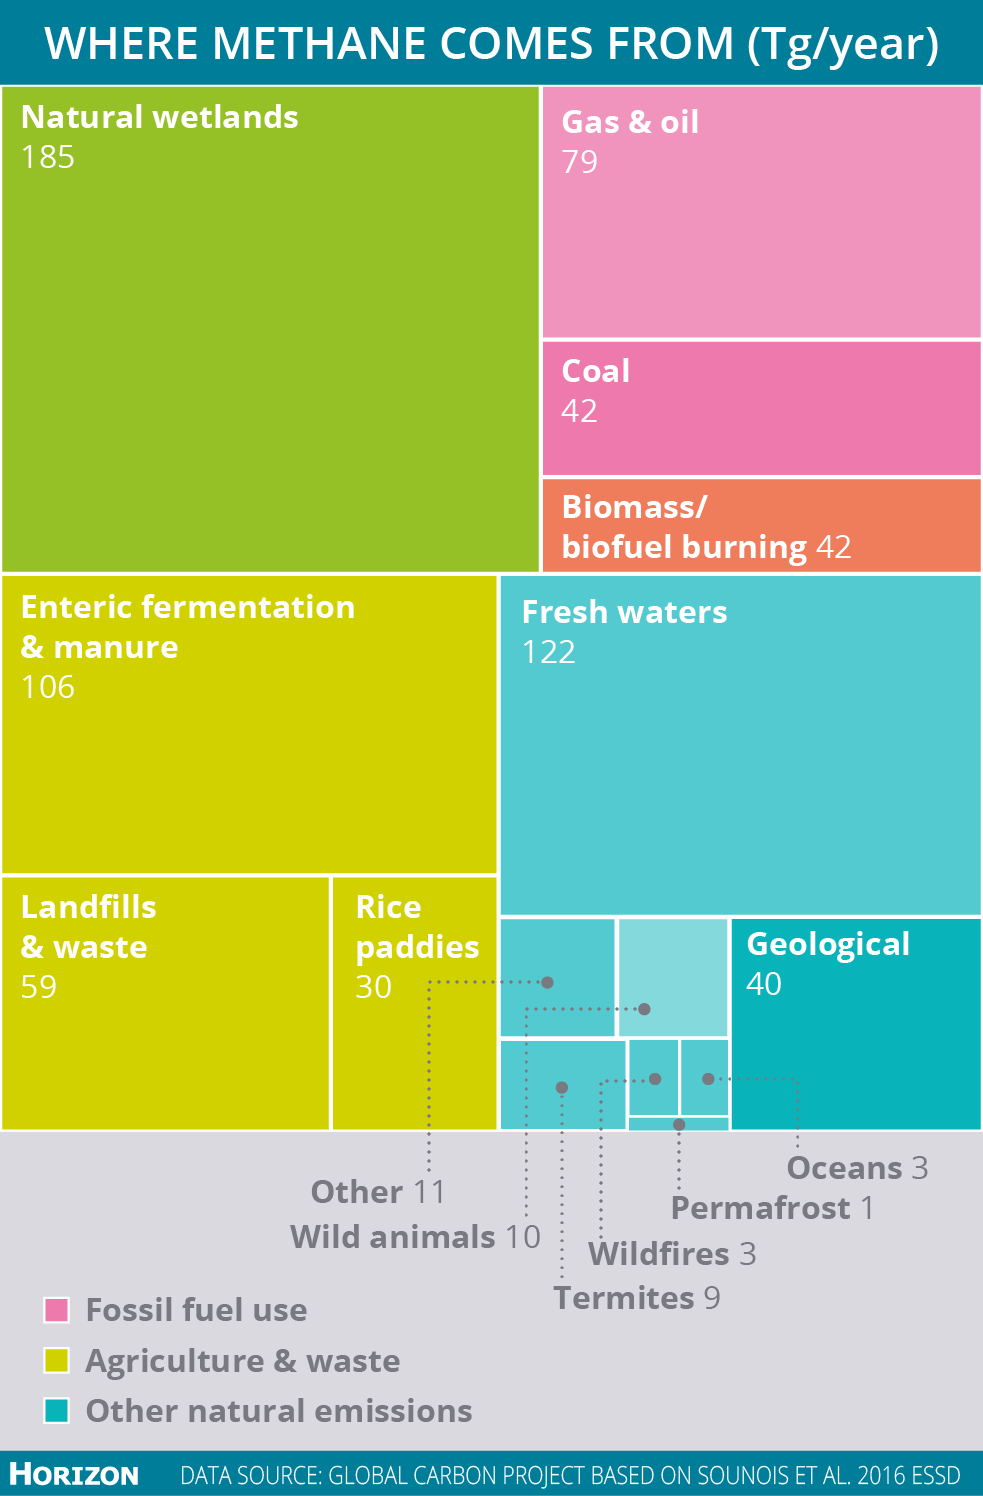 Between 2003 and 2012, the global methane emissions reached 730 teragrammes per year. But the exact figures are disputed, uncertainty is represented by lighter shades in this graphic. Image credit - Horizon